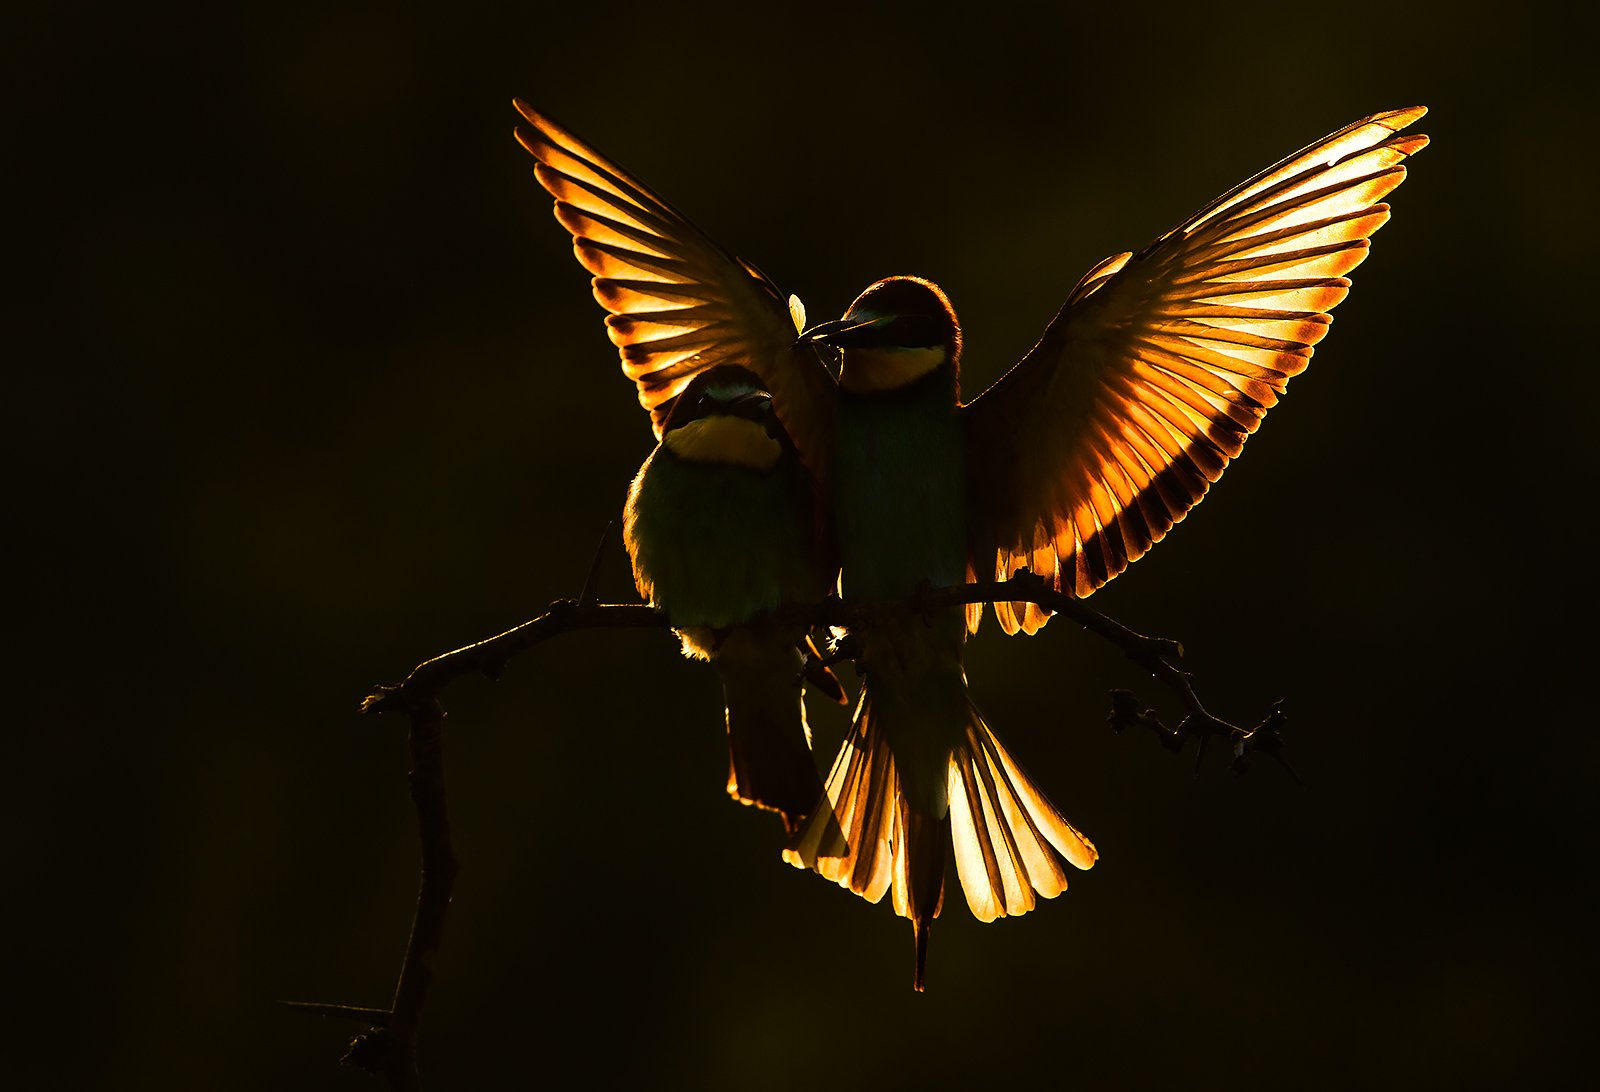 bee-eater wildlife photography nature, Radoslav Tsvetkov